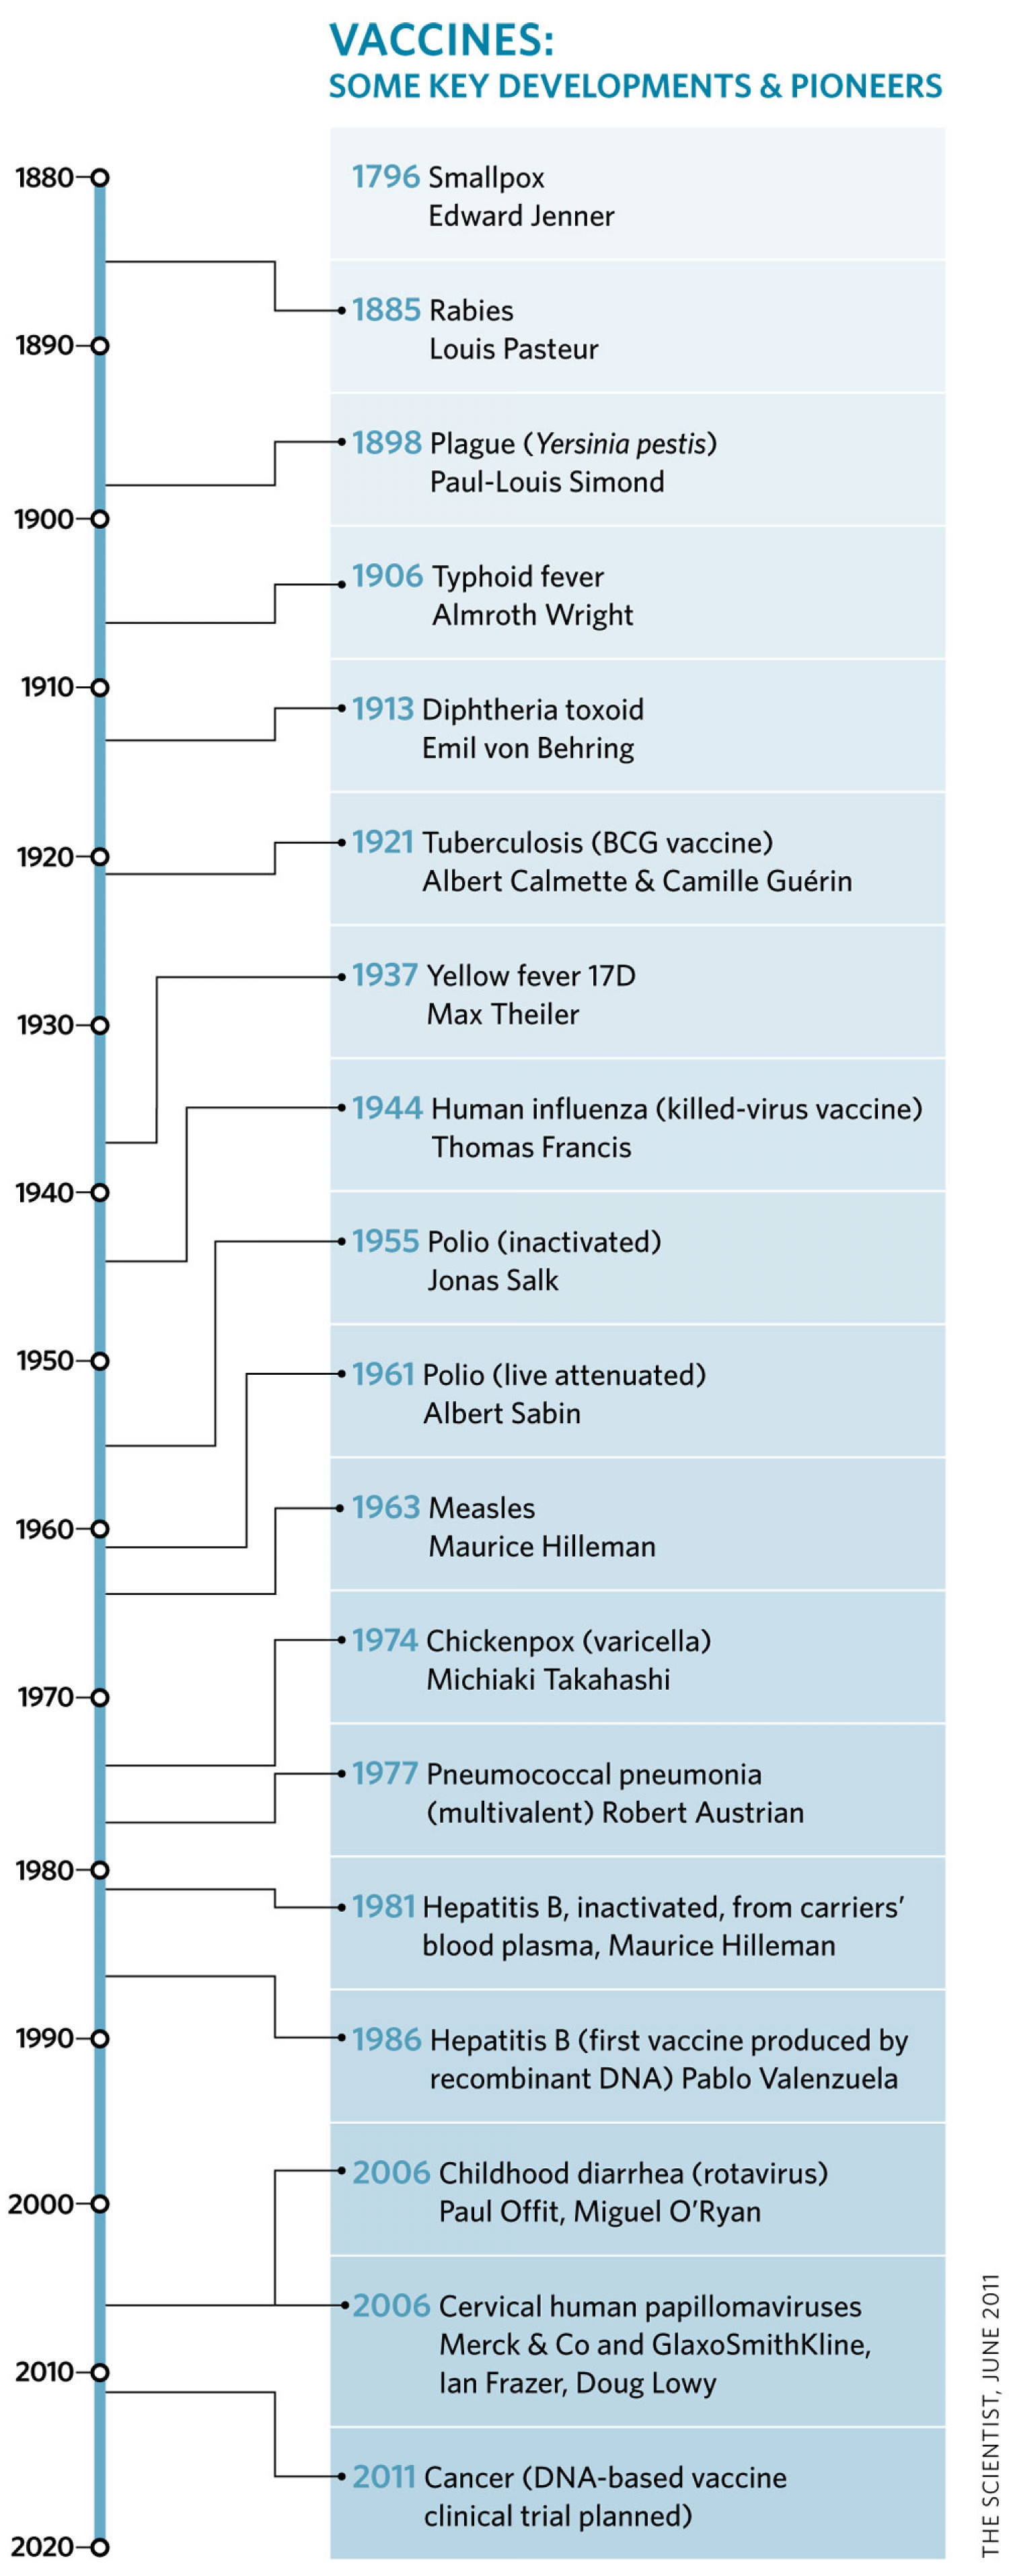 Vaccines Some Key Developments and Pioneers  Infographic